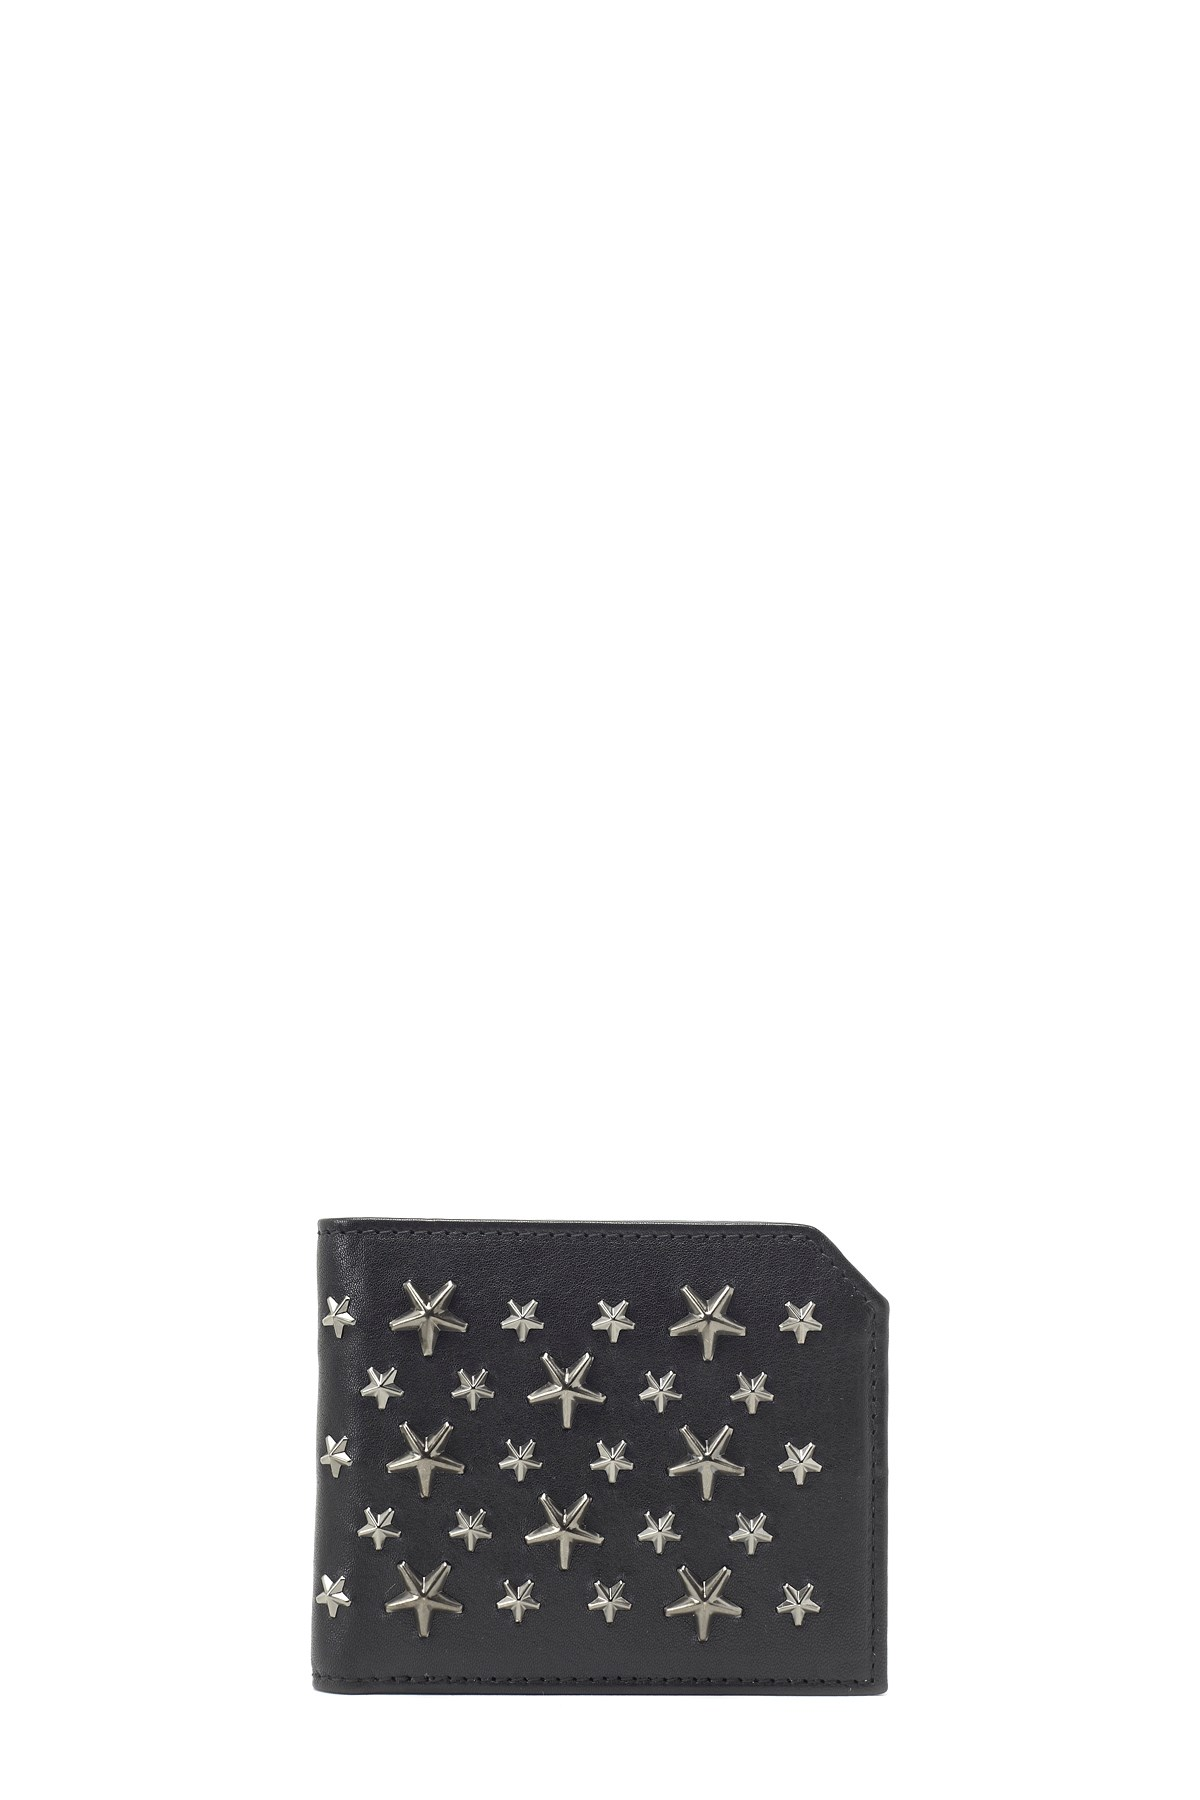 42086df35192 jimmy choo  albany bls  wallet available on julian-fashion.com - 53739